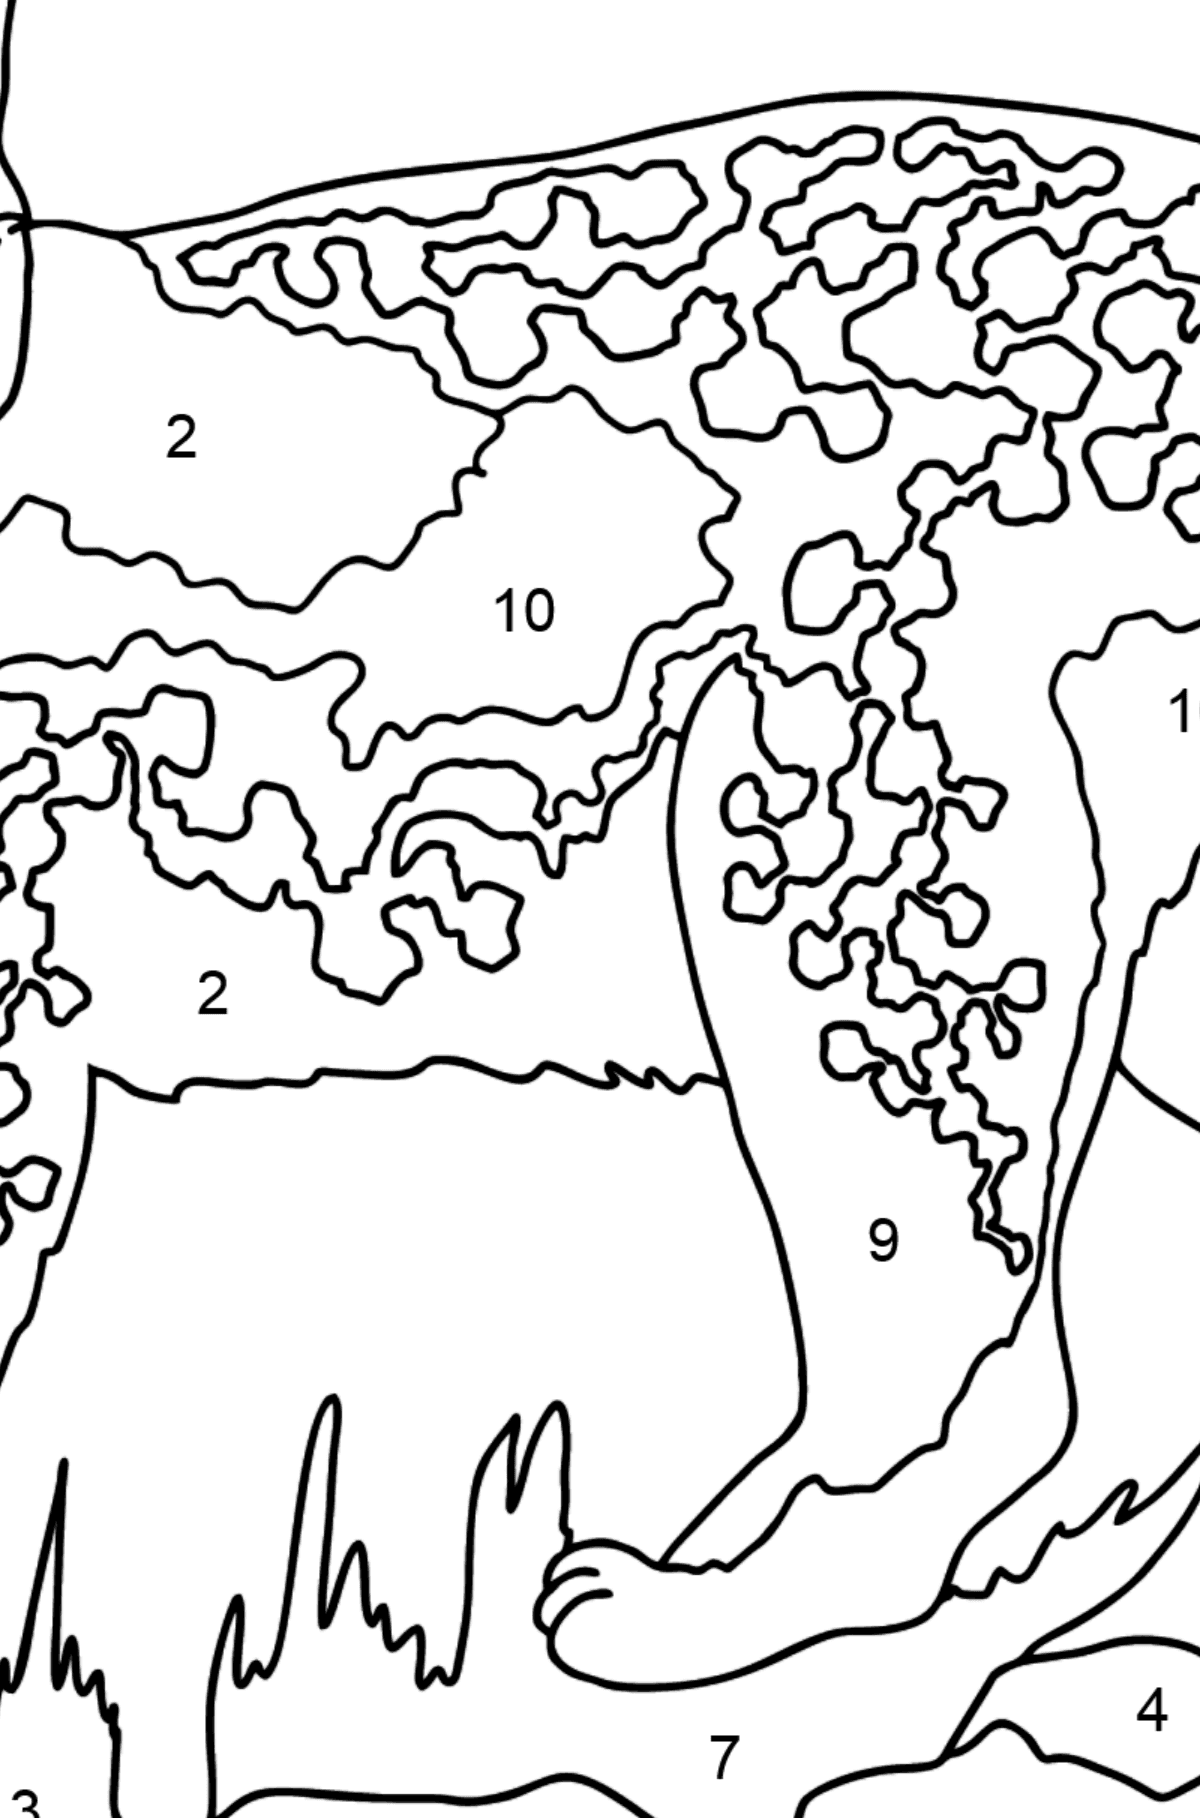 Coloring Page - A Wild Lynx - Coloring by Numbers for Kids